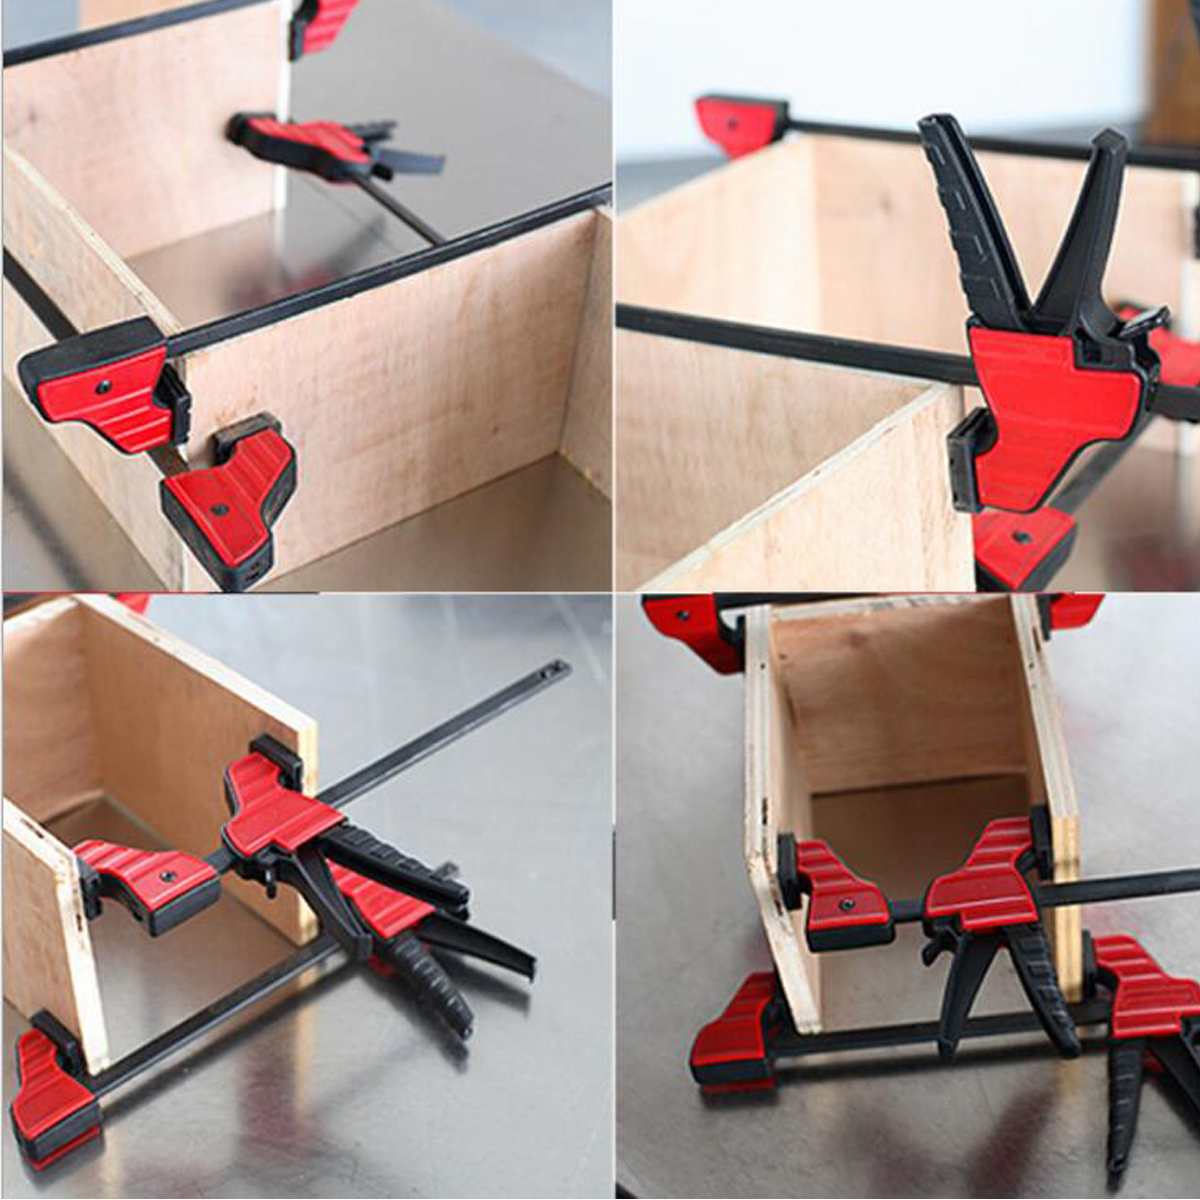 Terrific 4 6 12 18 Inch Plastic F Clamp Heavy Duty Holder Quick Release Parallel Wood Tool Woodworking Clamp Andrewgaddart Wooden Chair Designs For Living Room Andrewgaddartcom